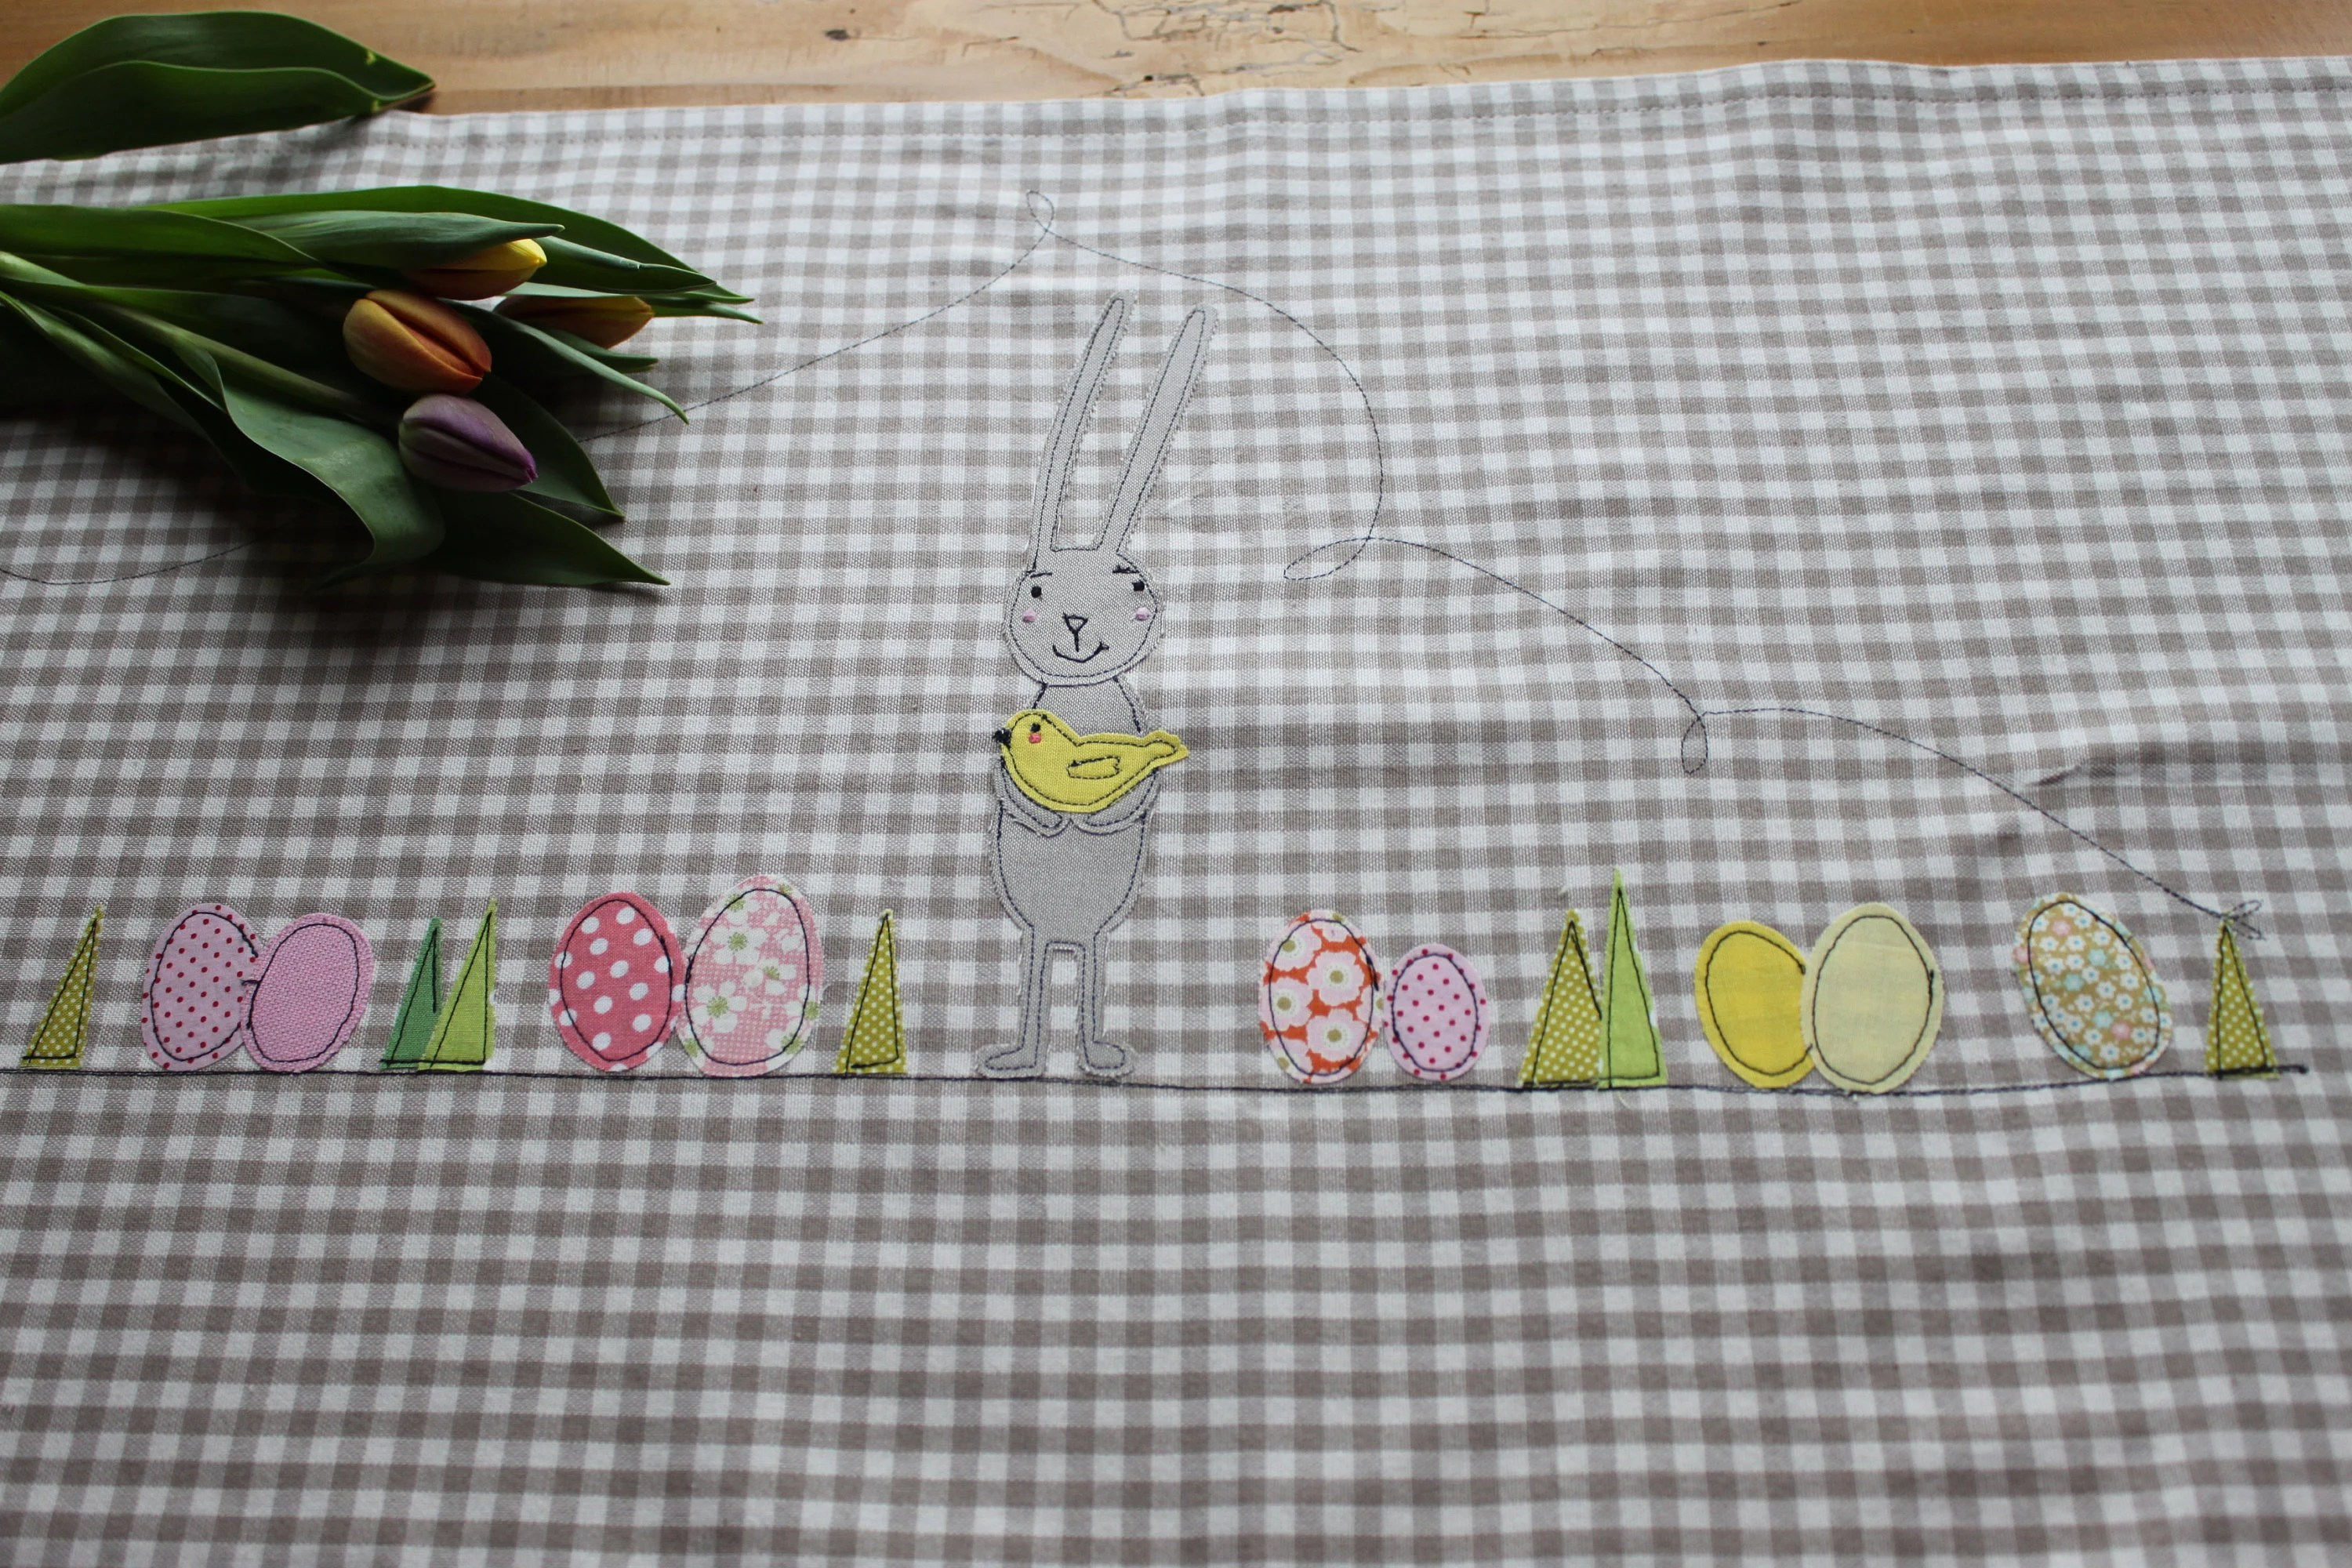 Tablecloth Easter 85x85 Cm Easter Tablecloth Medium Blanket Table Runner Chicken Kitchen Dining Bar Linens Textiles